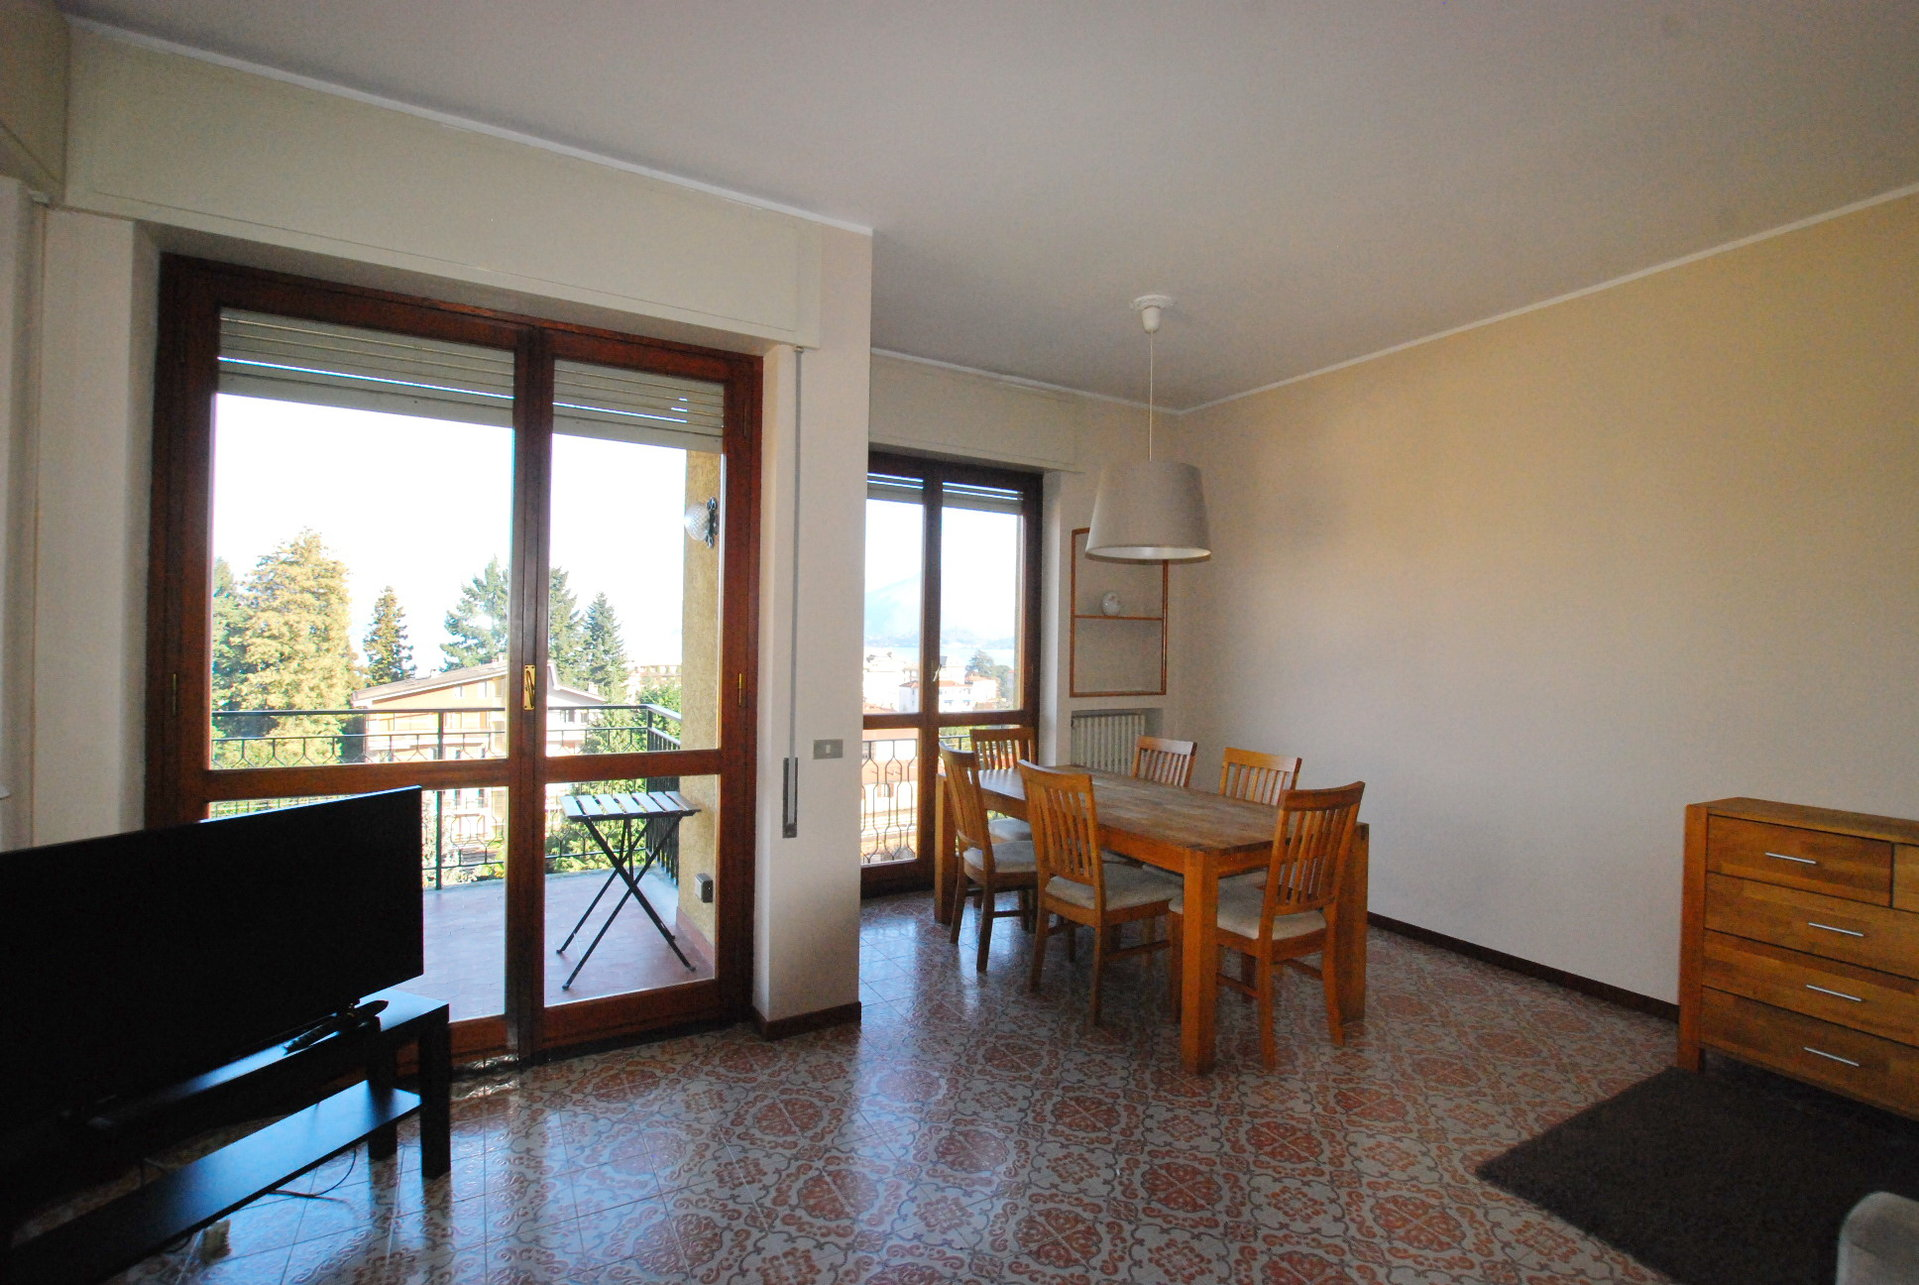 Apartment for rent in the center of Stresa